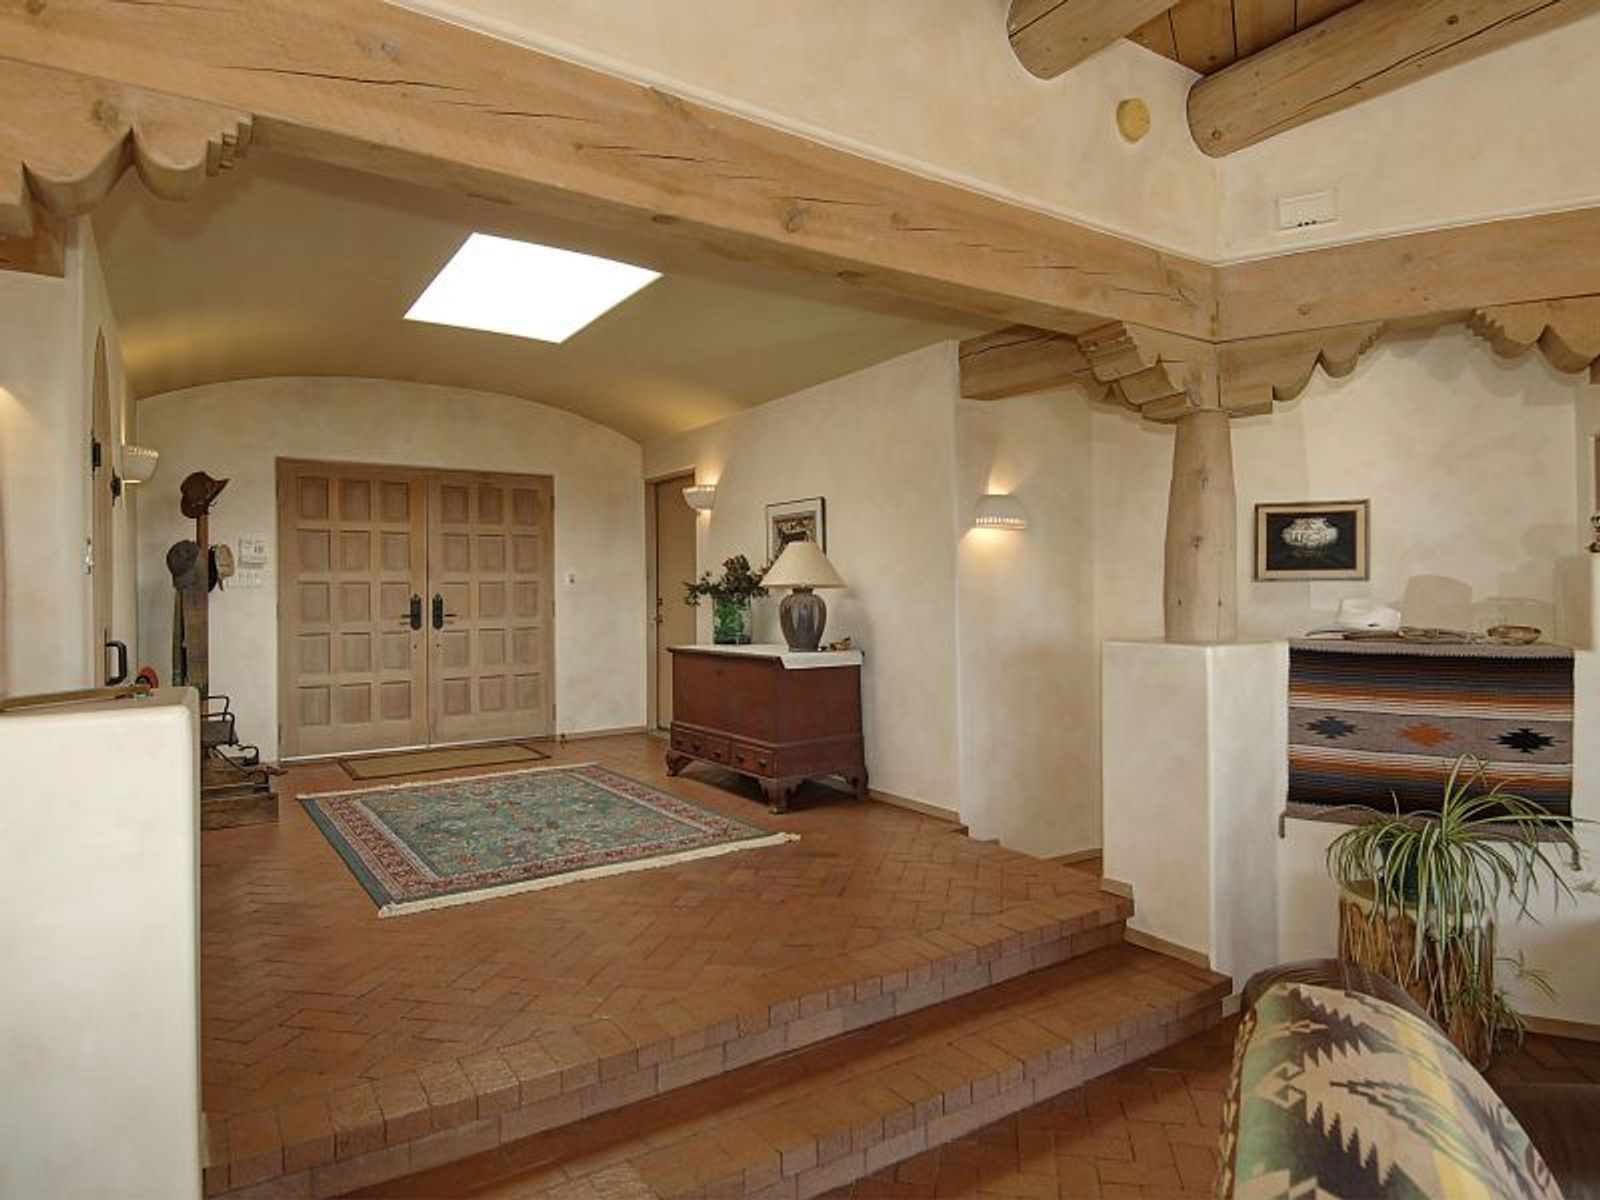 6 Estrella De La Manana, Santa Fe NM Single Family Home - Santa Fe Real Estate